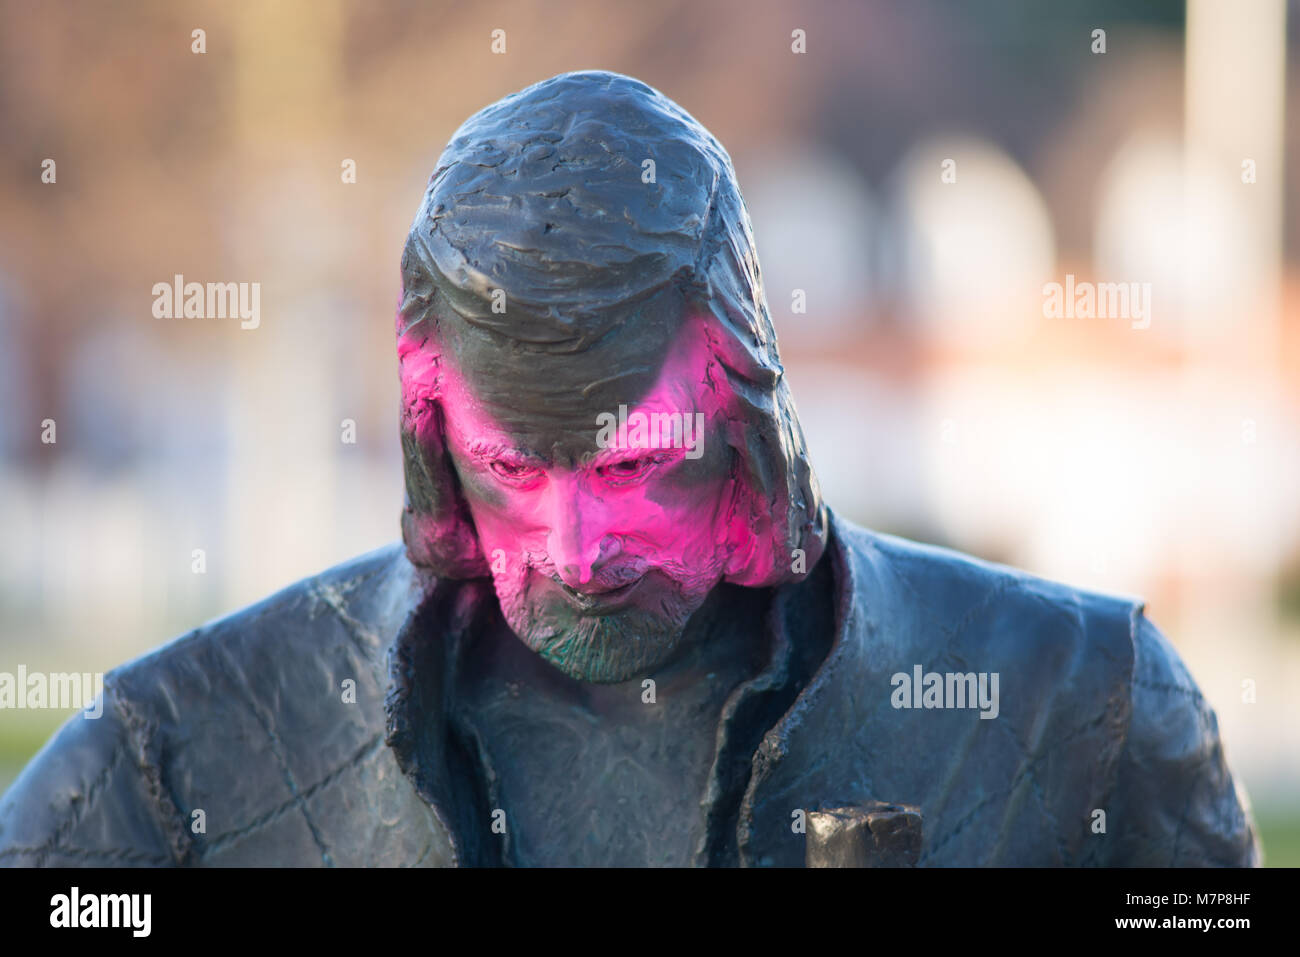 vandal painting pink cross on face of William Shakespeare statue in Stratford upon Avon - Stock Image